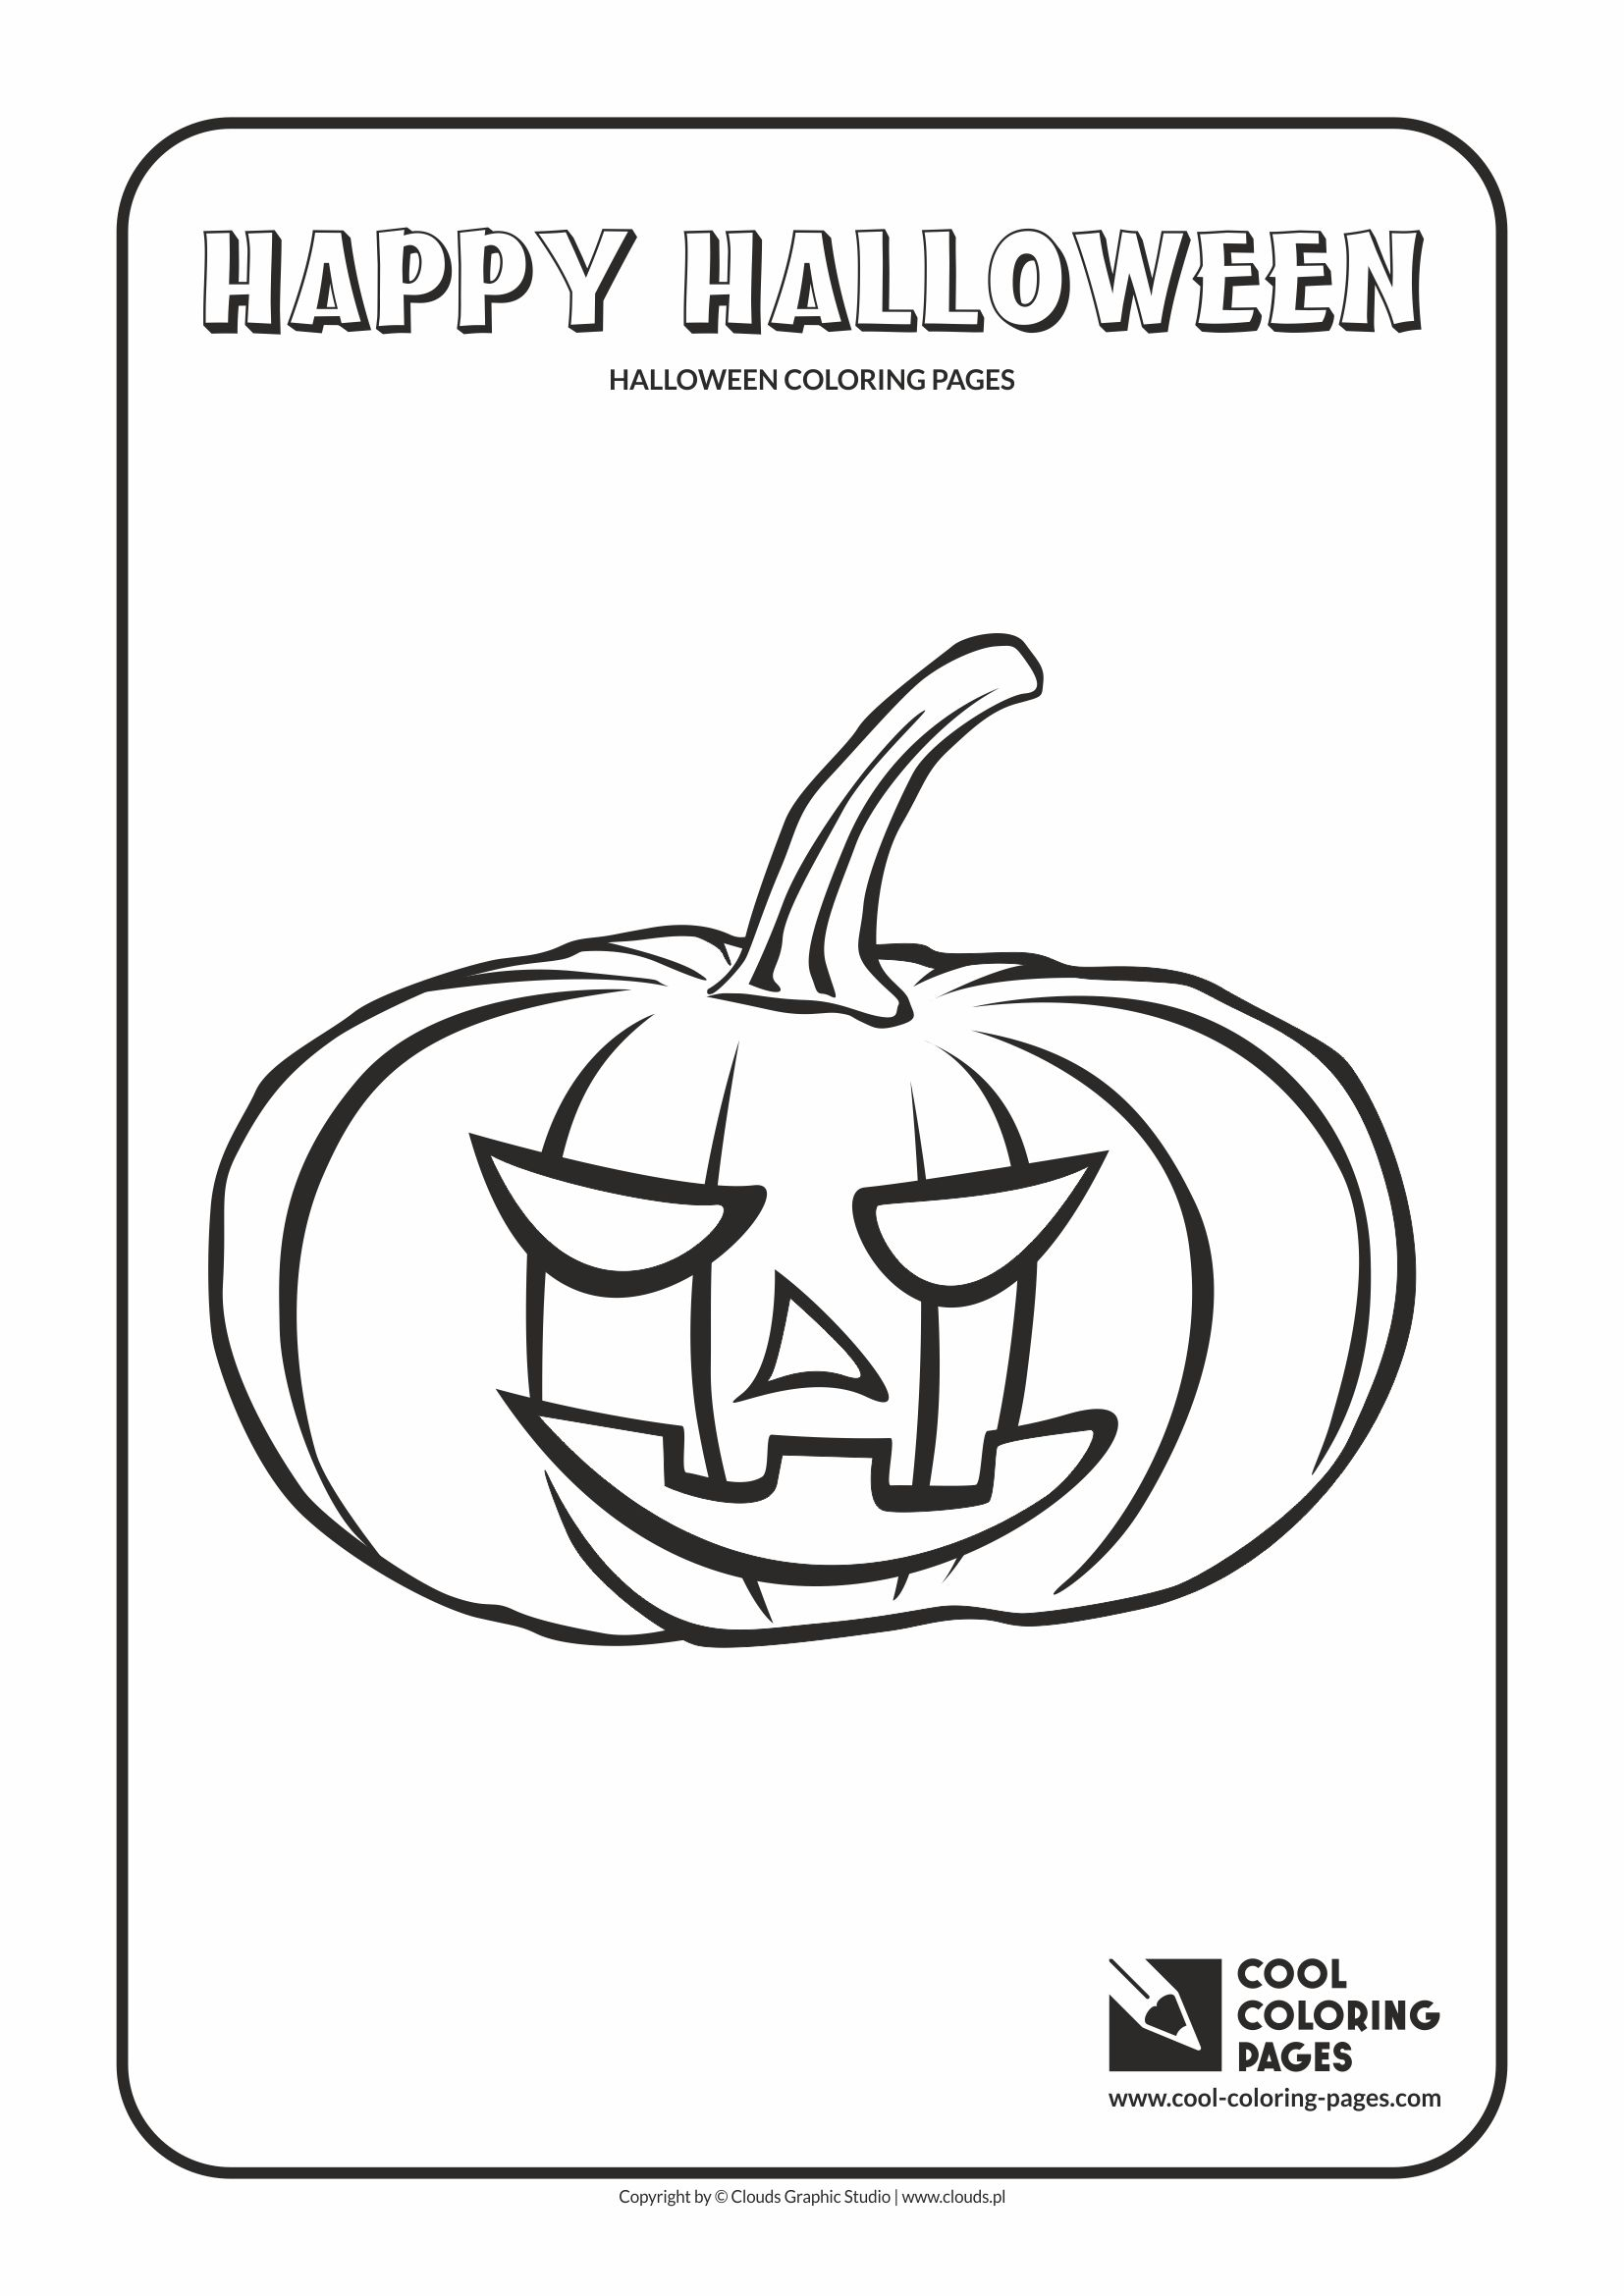 Cool Coloring Pages Halloween pumpkin no 1 coloring page - Cool ...